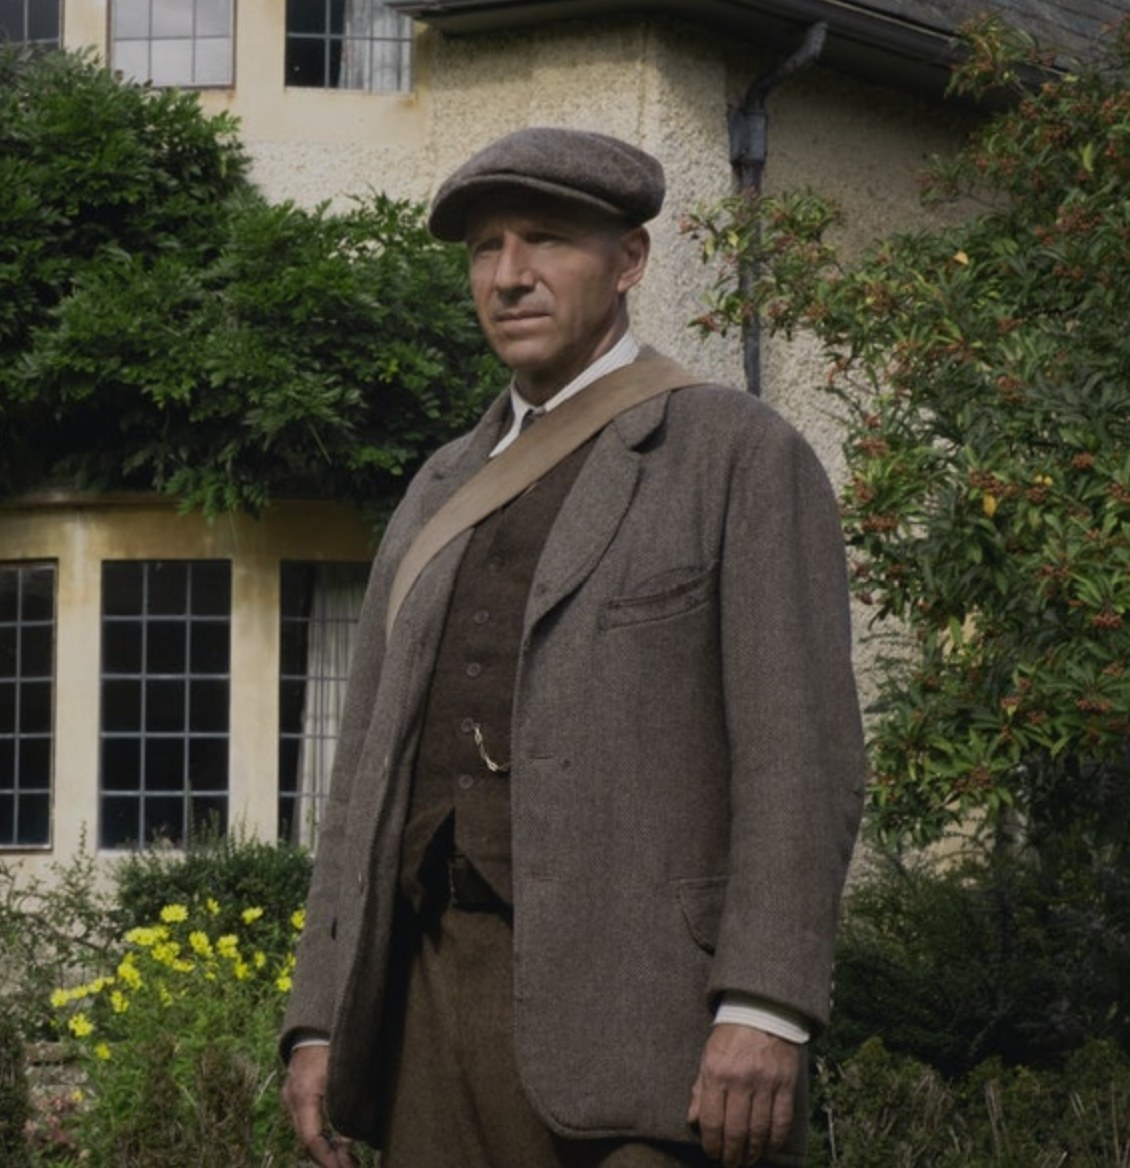 Still from The Dig: Basil Brown in front of a house